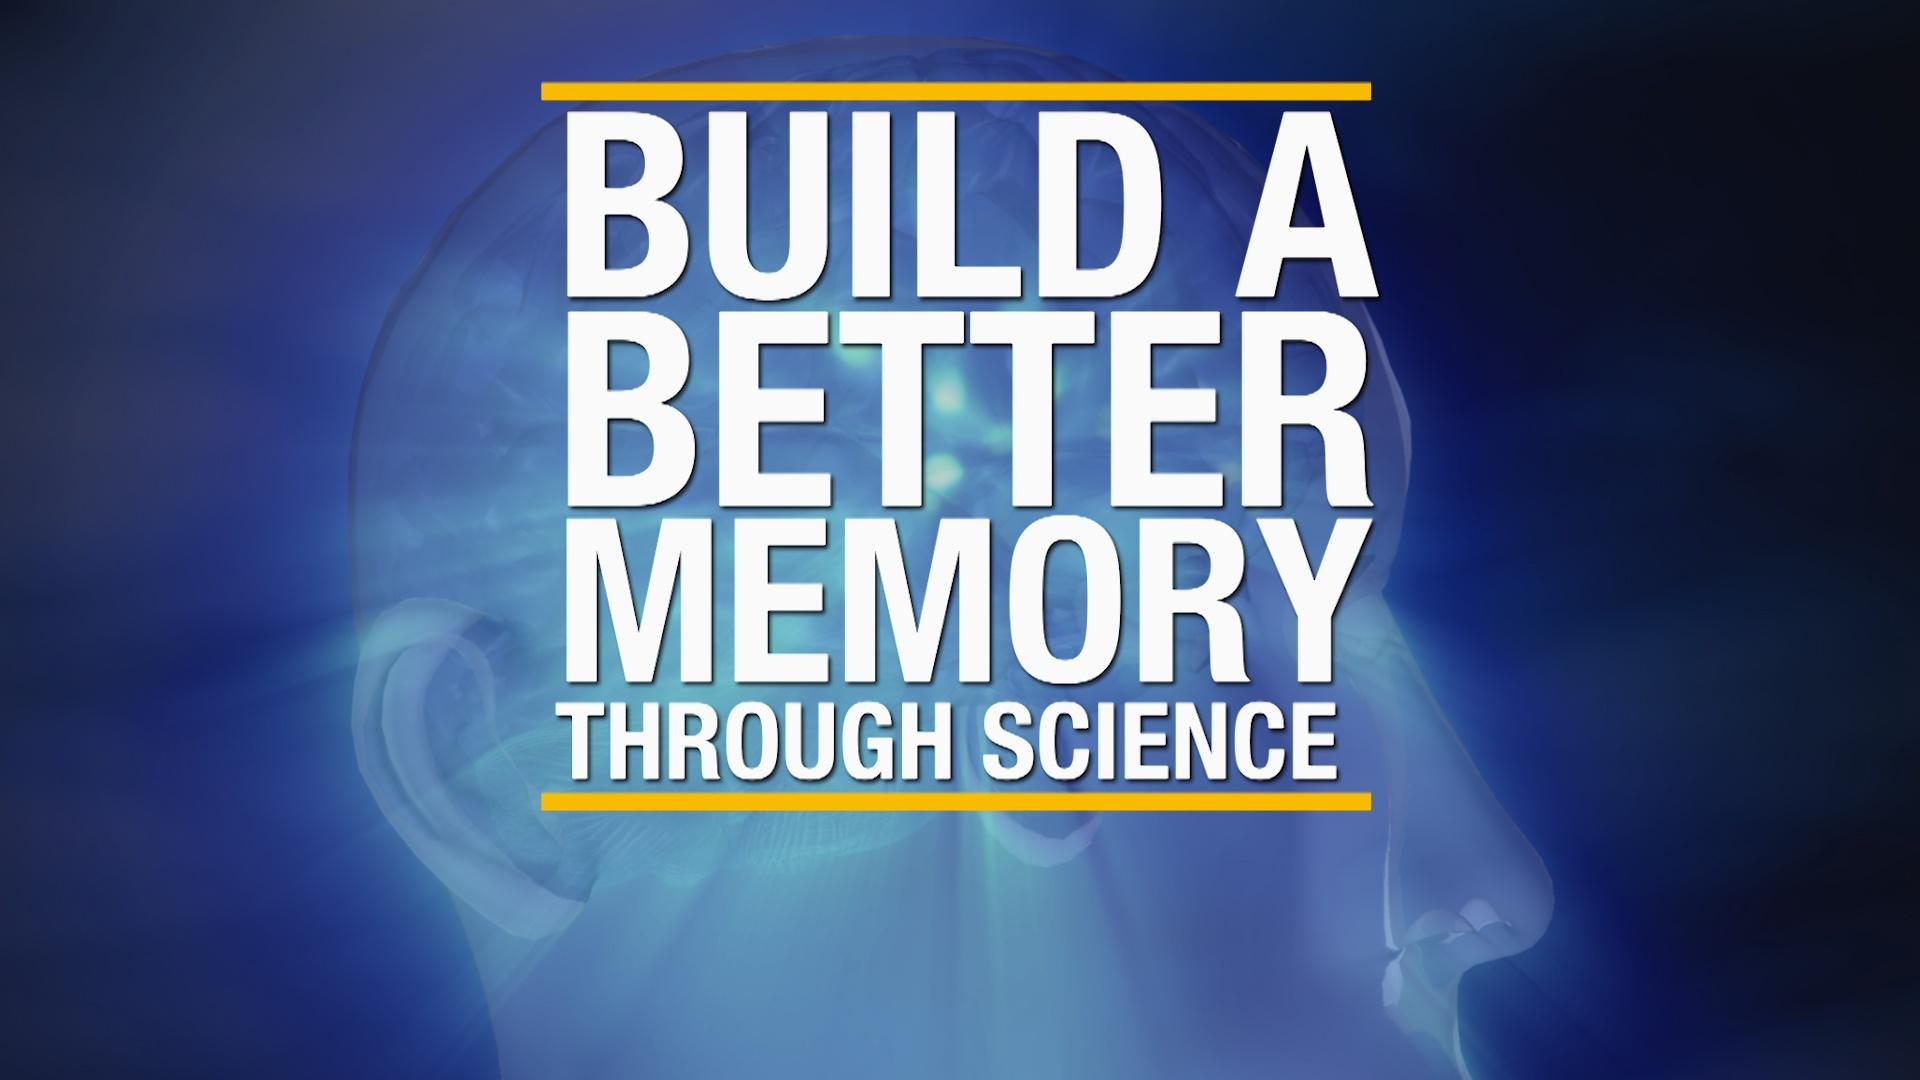 Build a better memory title image